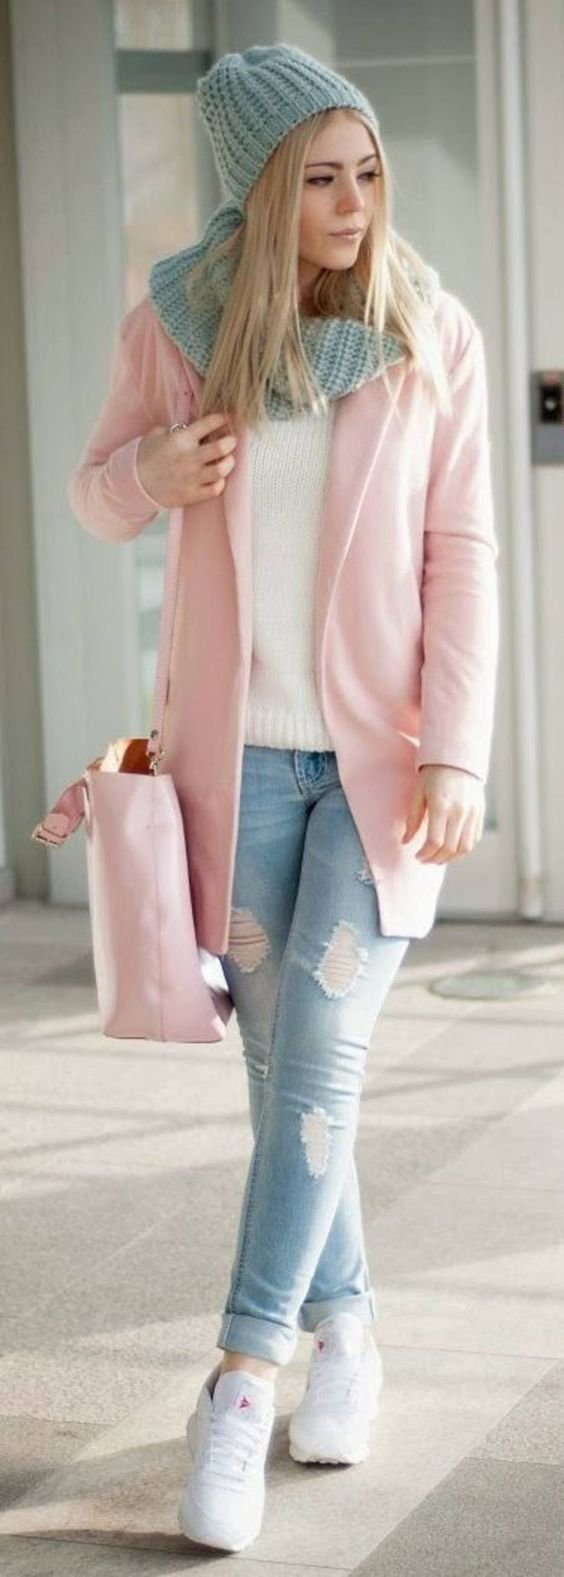 Rose Quartz Palette Rose quartz: tom suave de rosa é aposta de cor para o verão 2016 - Vida & Estilo - Estadão - Love that coat ♠ re-pinned by http://www.wfpblogs.com/author/rachelwfp/: